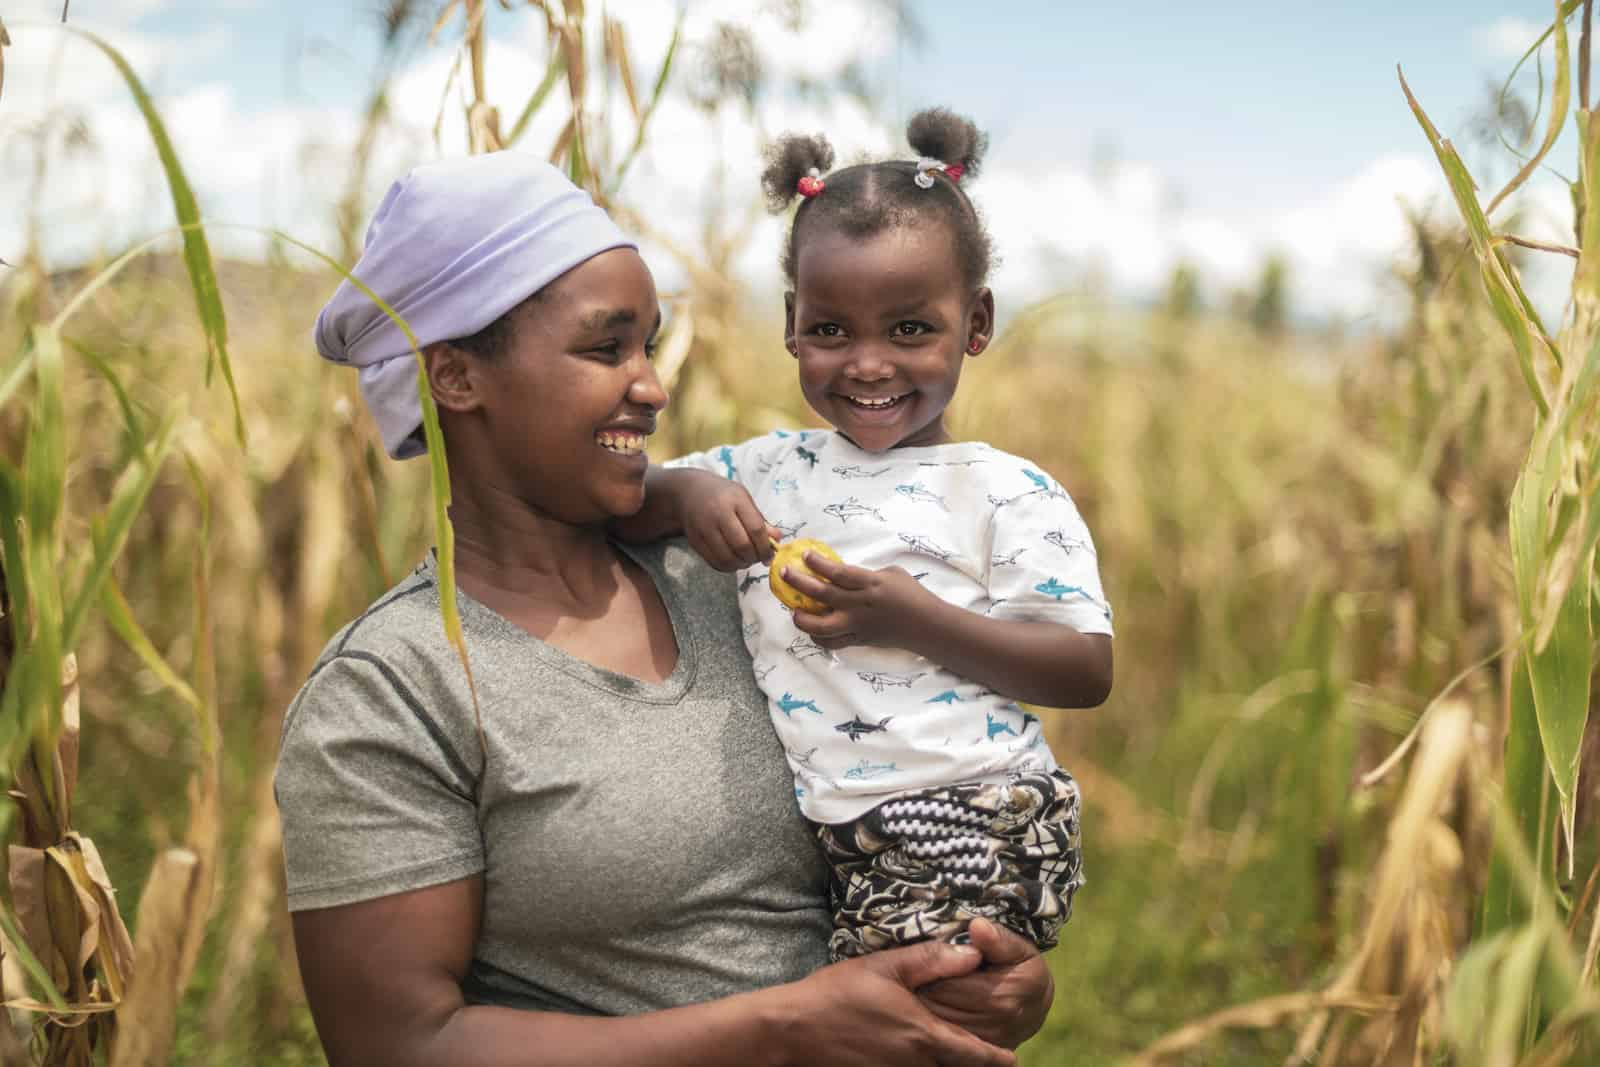 A woman in a cornfield holds a toddler.